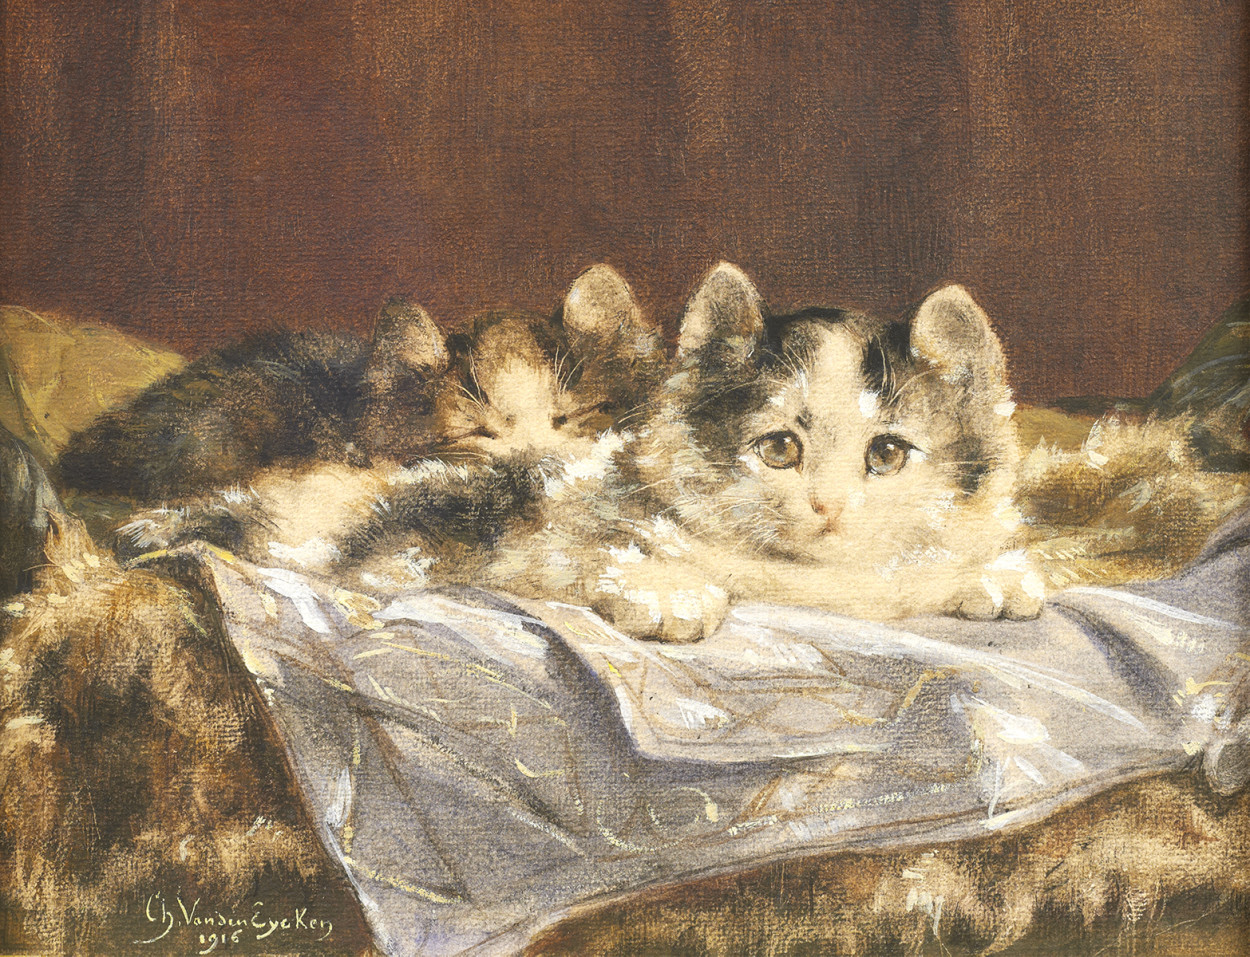 Charles-Van_den-Eycken_Les-Chatons private collection